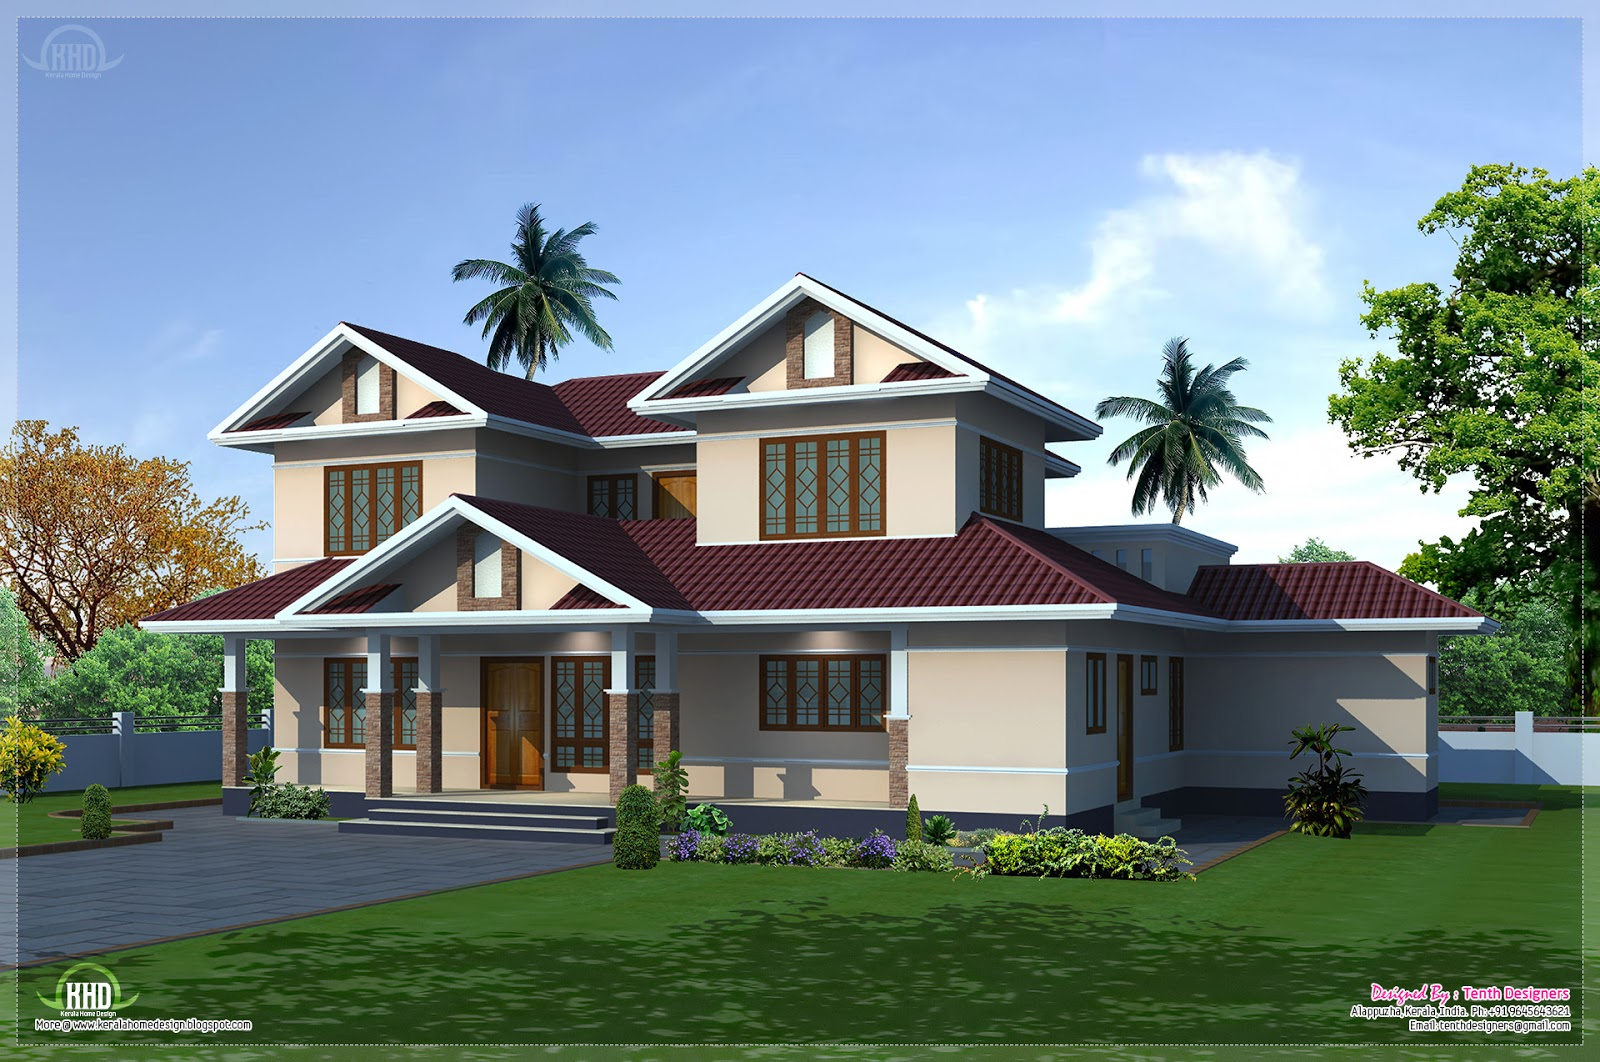 2400 villa exterior and floor plan home kerala plans for Modern house plans 2400 sq ft